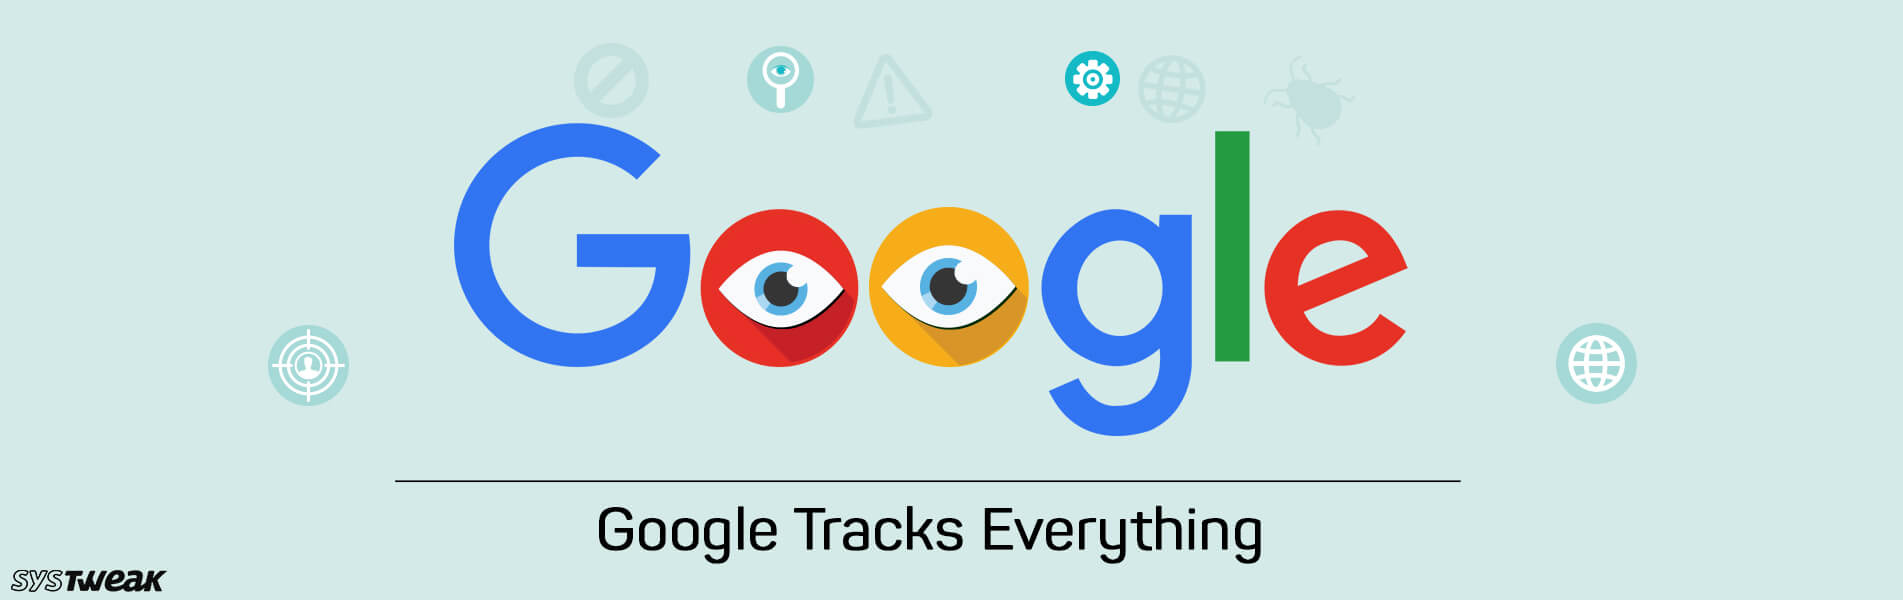 How Much Google Knows About You?